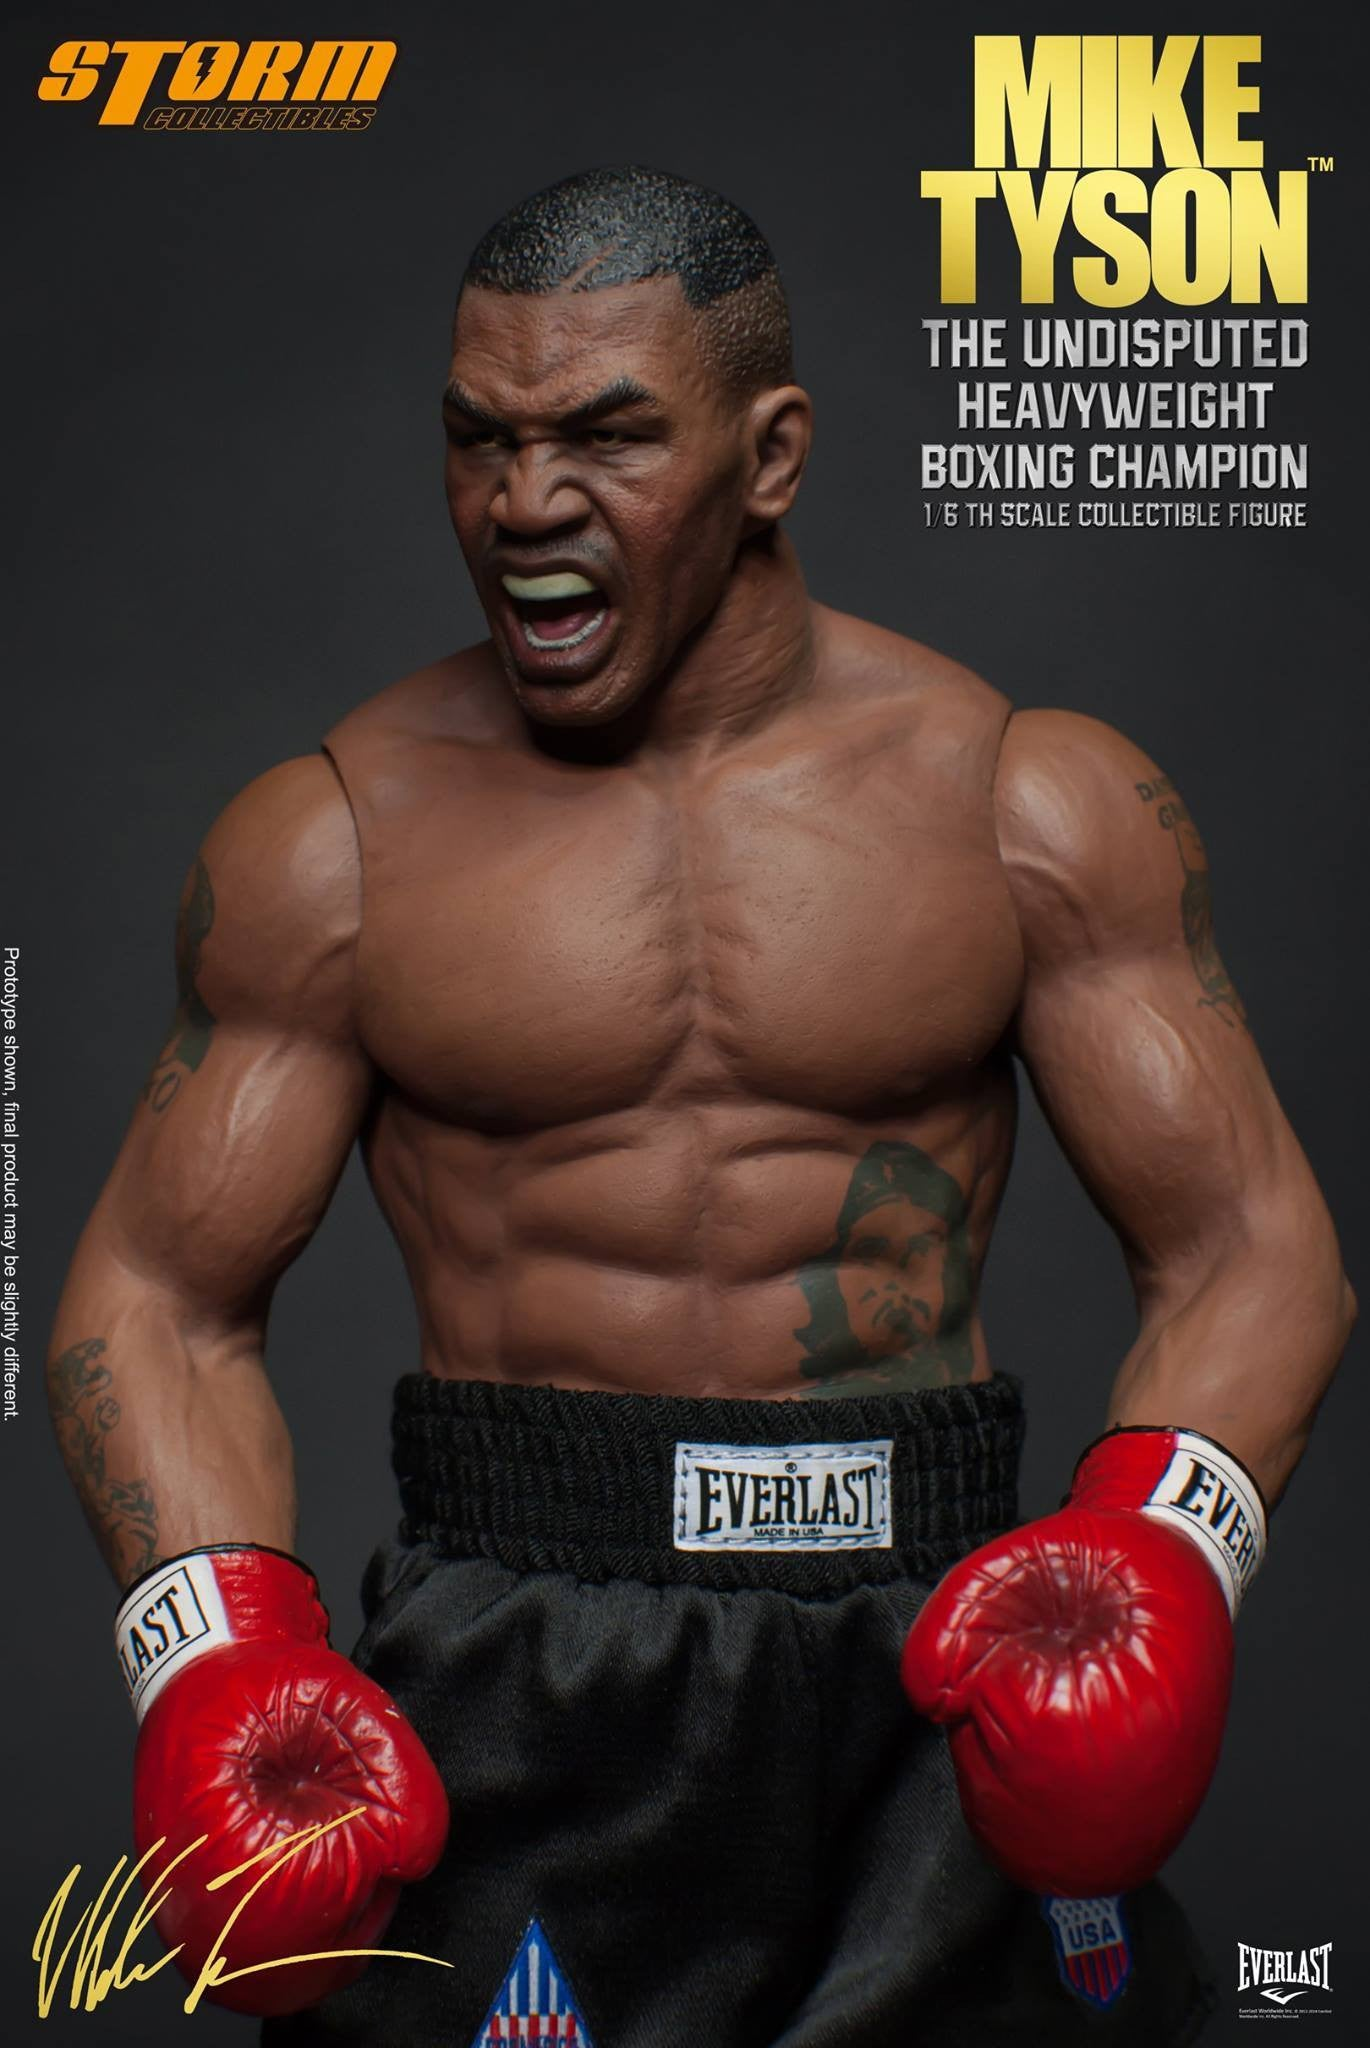 "Storm Collectibles - 1:6 Scale Collectible Figure - Mike Tyson ""The Undisputed Heavyweight Boxing Champion"" - Marvelous Toys - 8"